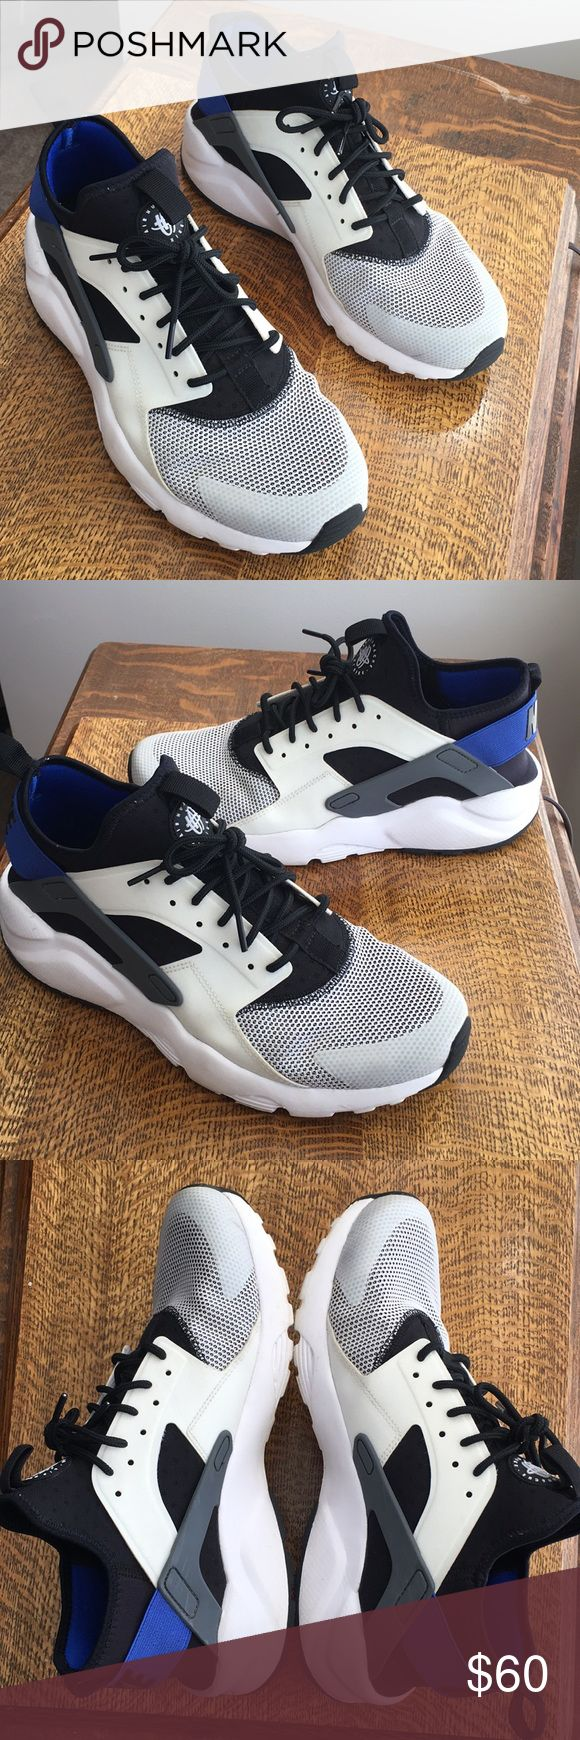 Nike Huaraches Black-White-Blue Nike Huaraches // Size 11 (Fits 10-10 1/2) // Condition is Used but good.  7/10 -8/10 with some small scuffs and fading on the white. Nike Shoes Athletic Shoes